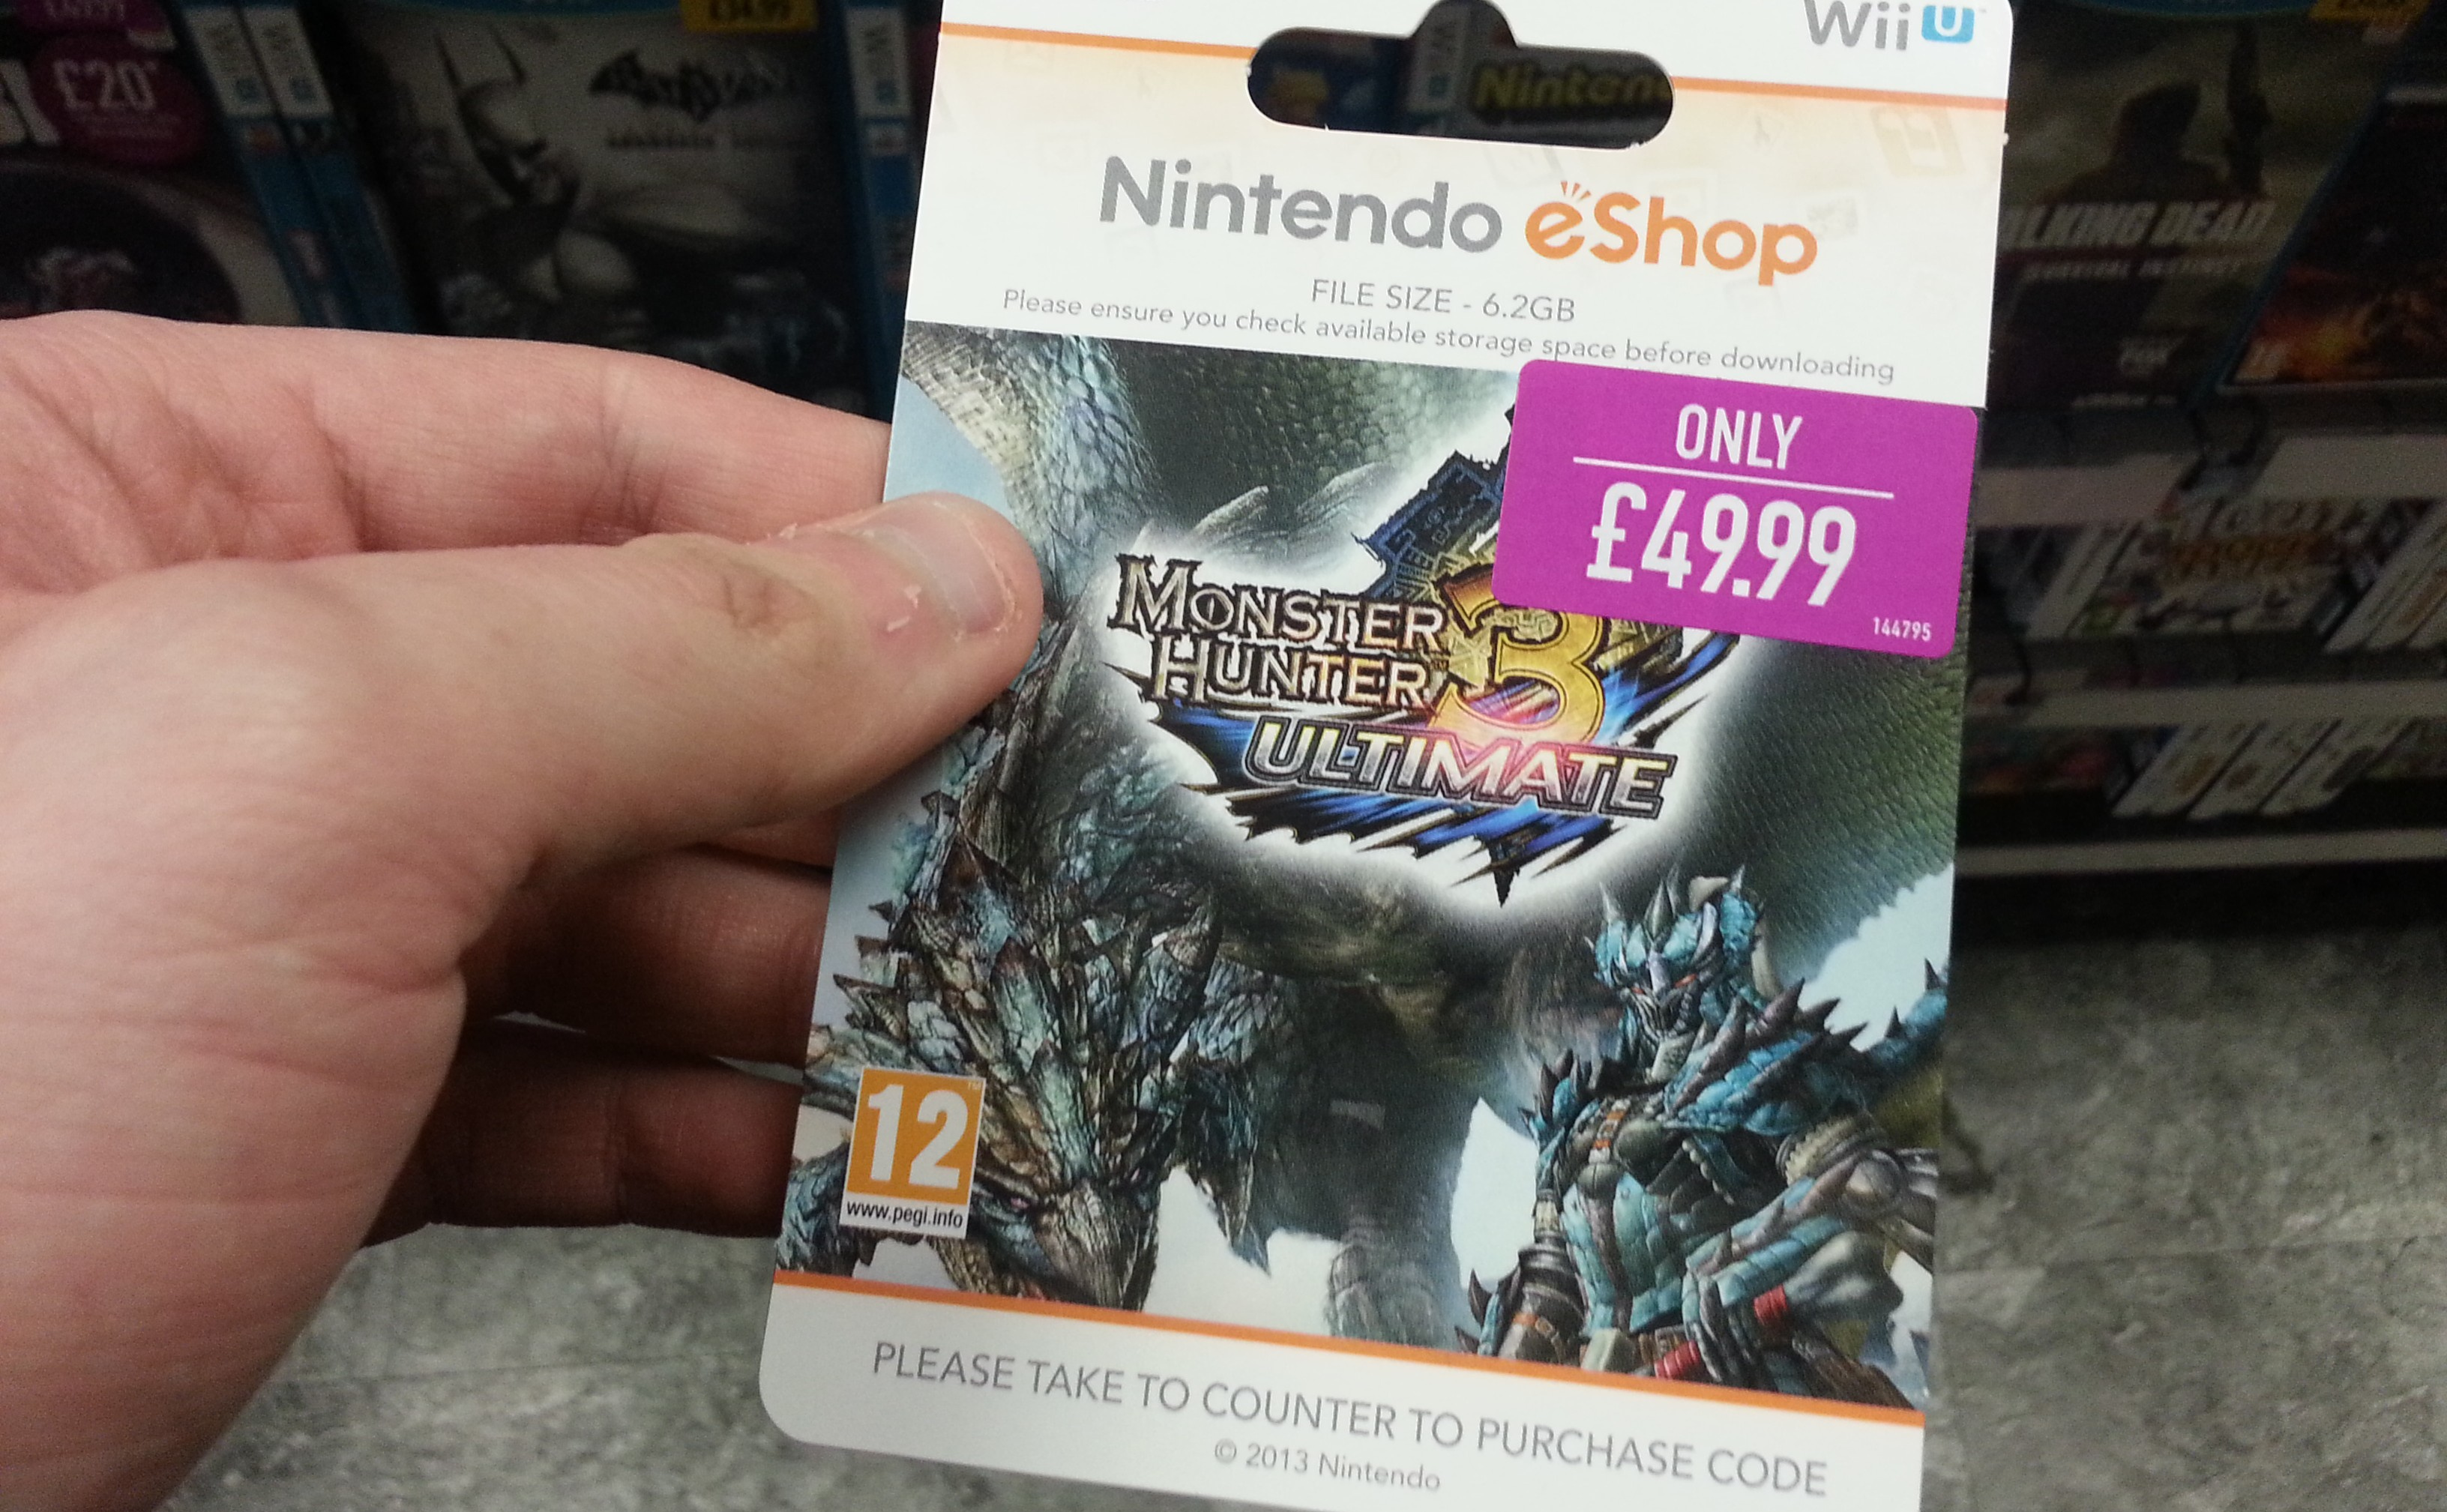 GAME Bags European Exclusive On EShop Download Codes Nintendo Life - Free blank invoice template nintendo online store